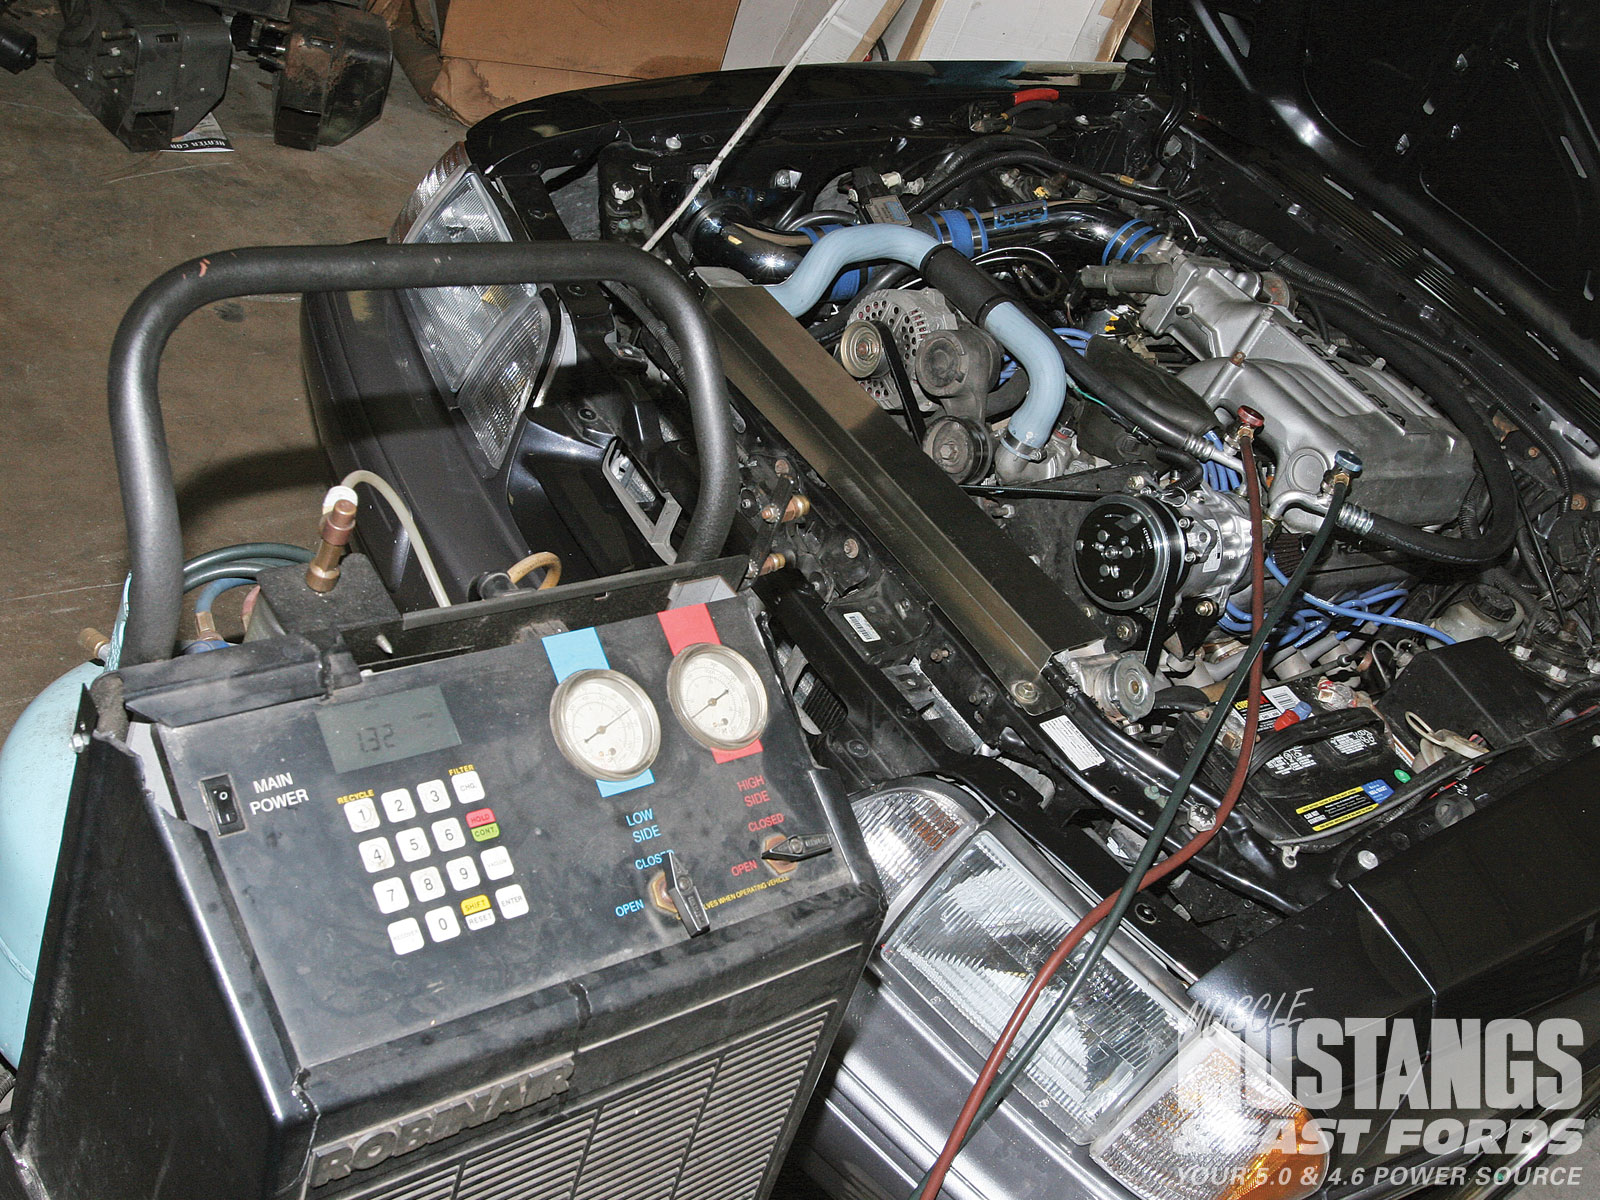 Mmfp 1010 01 O 1993 Ford Mustang Lx Engine - Photo 30189076